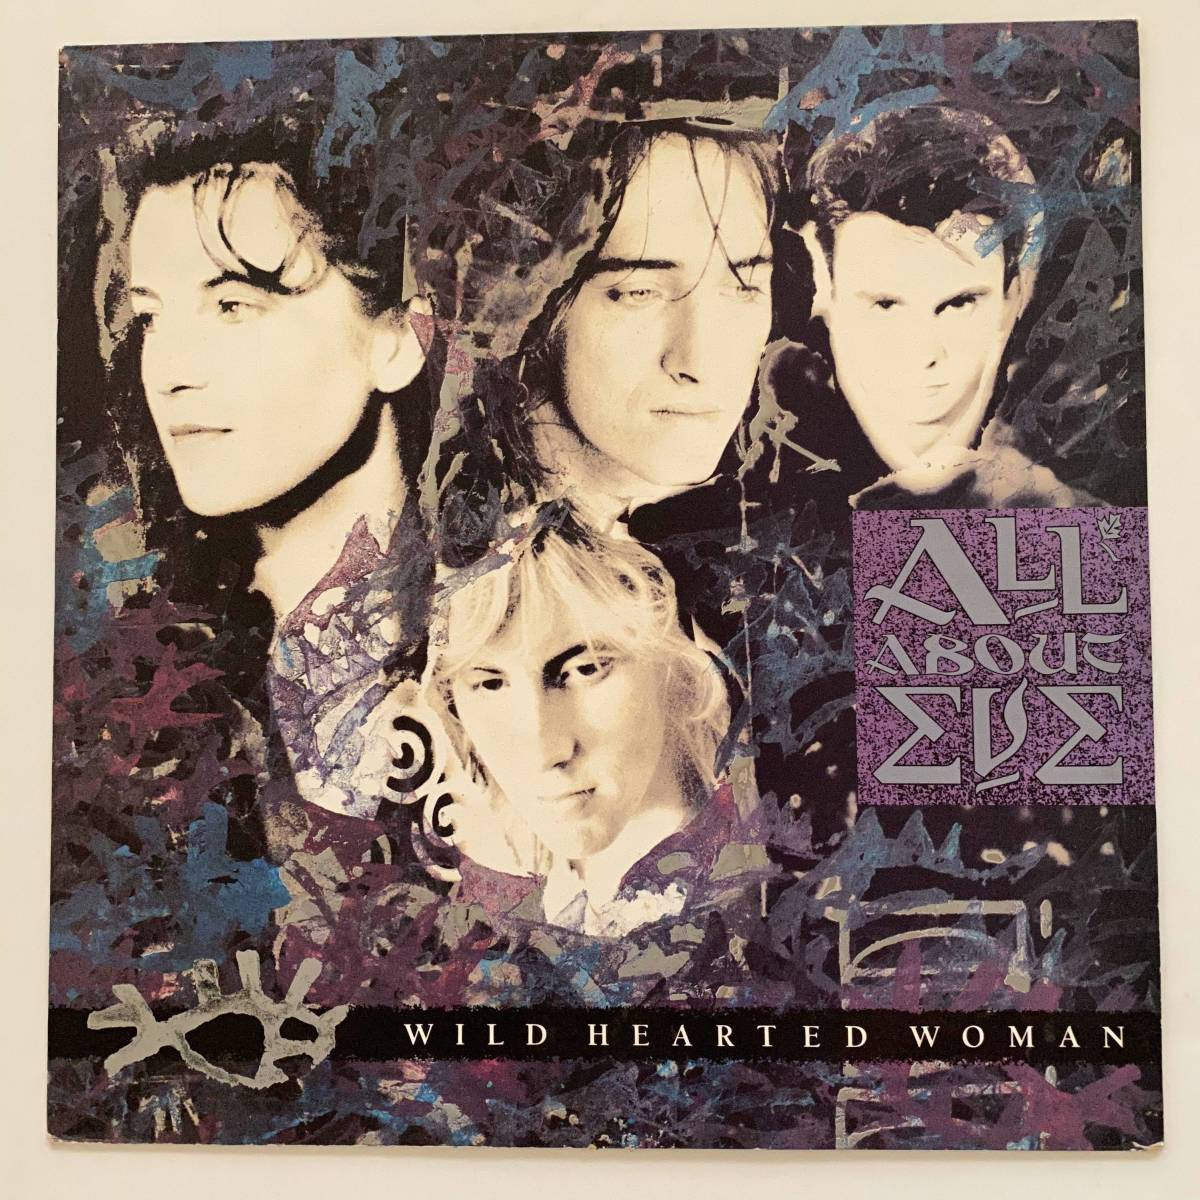 ■ All About Eve ■ Wild Hearted Woman ■ 12inch ■ UKオリジナル盤 ■